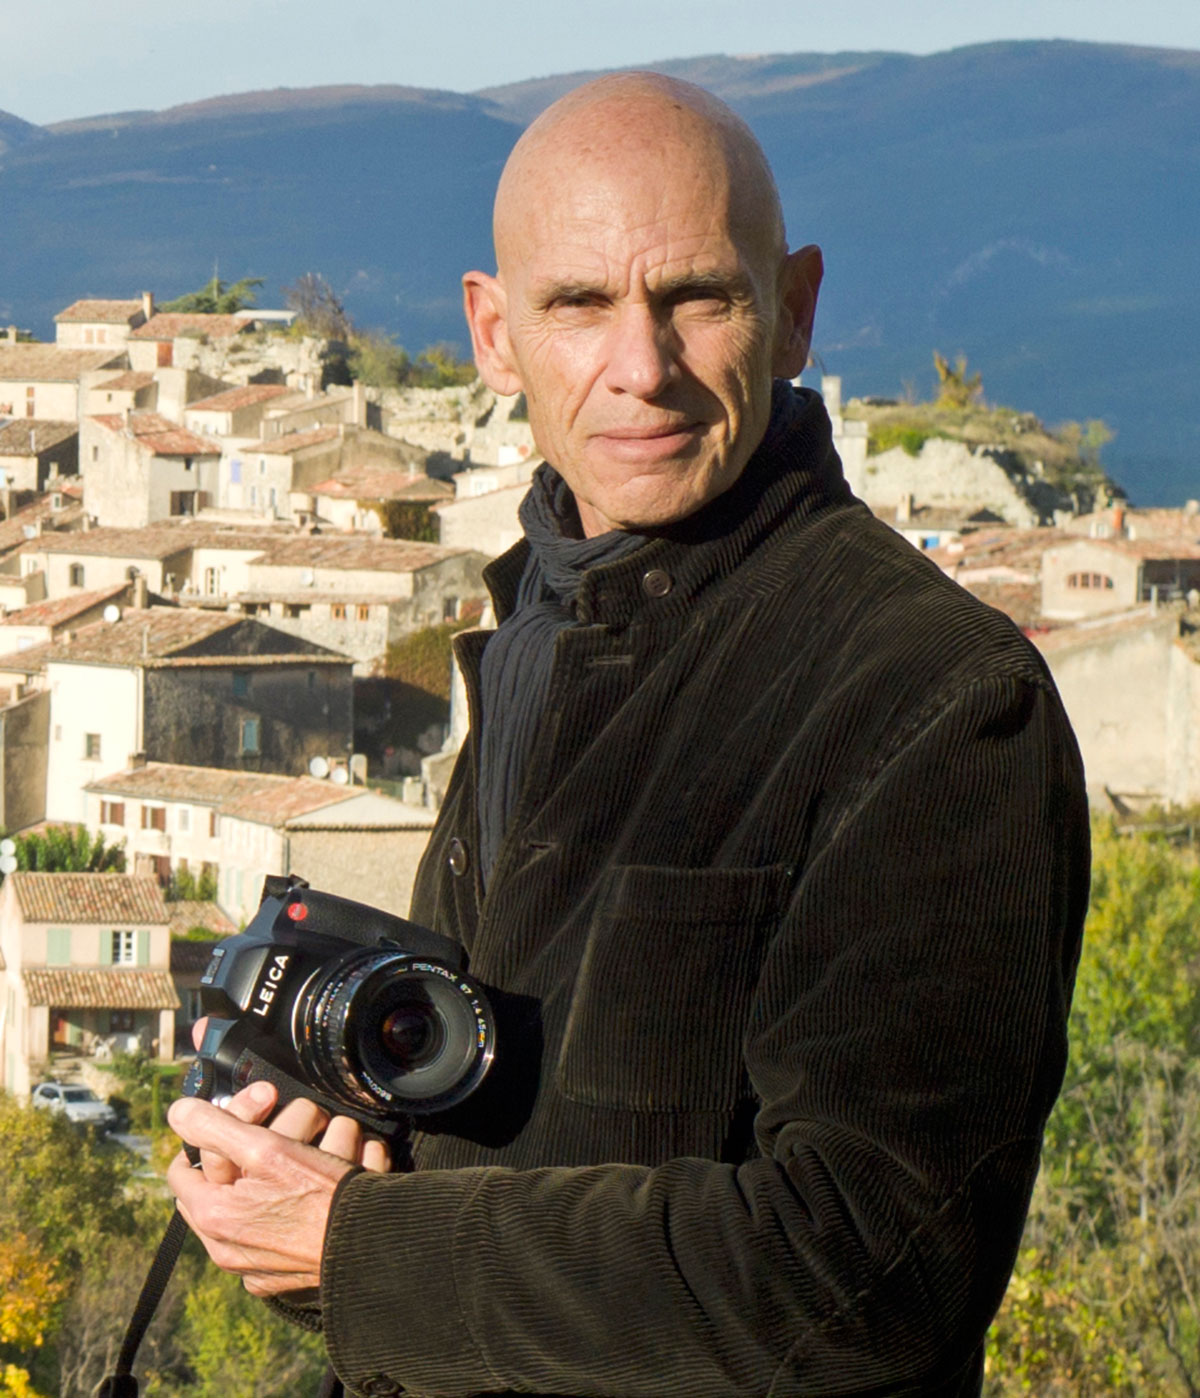 Joel Meyerowitz. Photo by Maggie Barrett. Image courtesy of Rencontres d'Arles. © Maggie Barrett